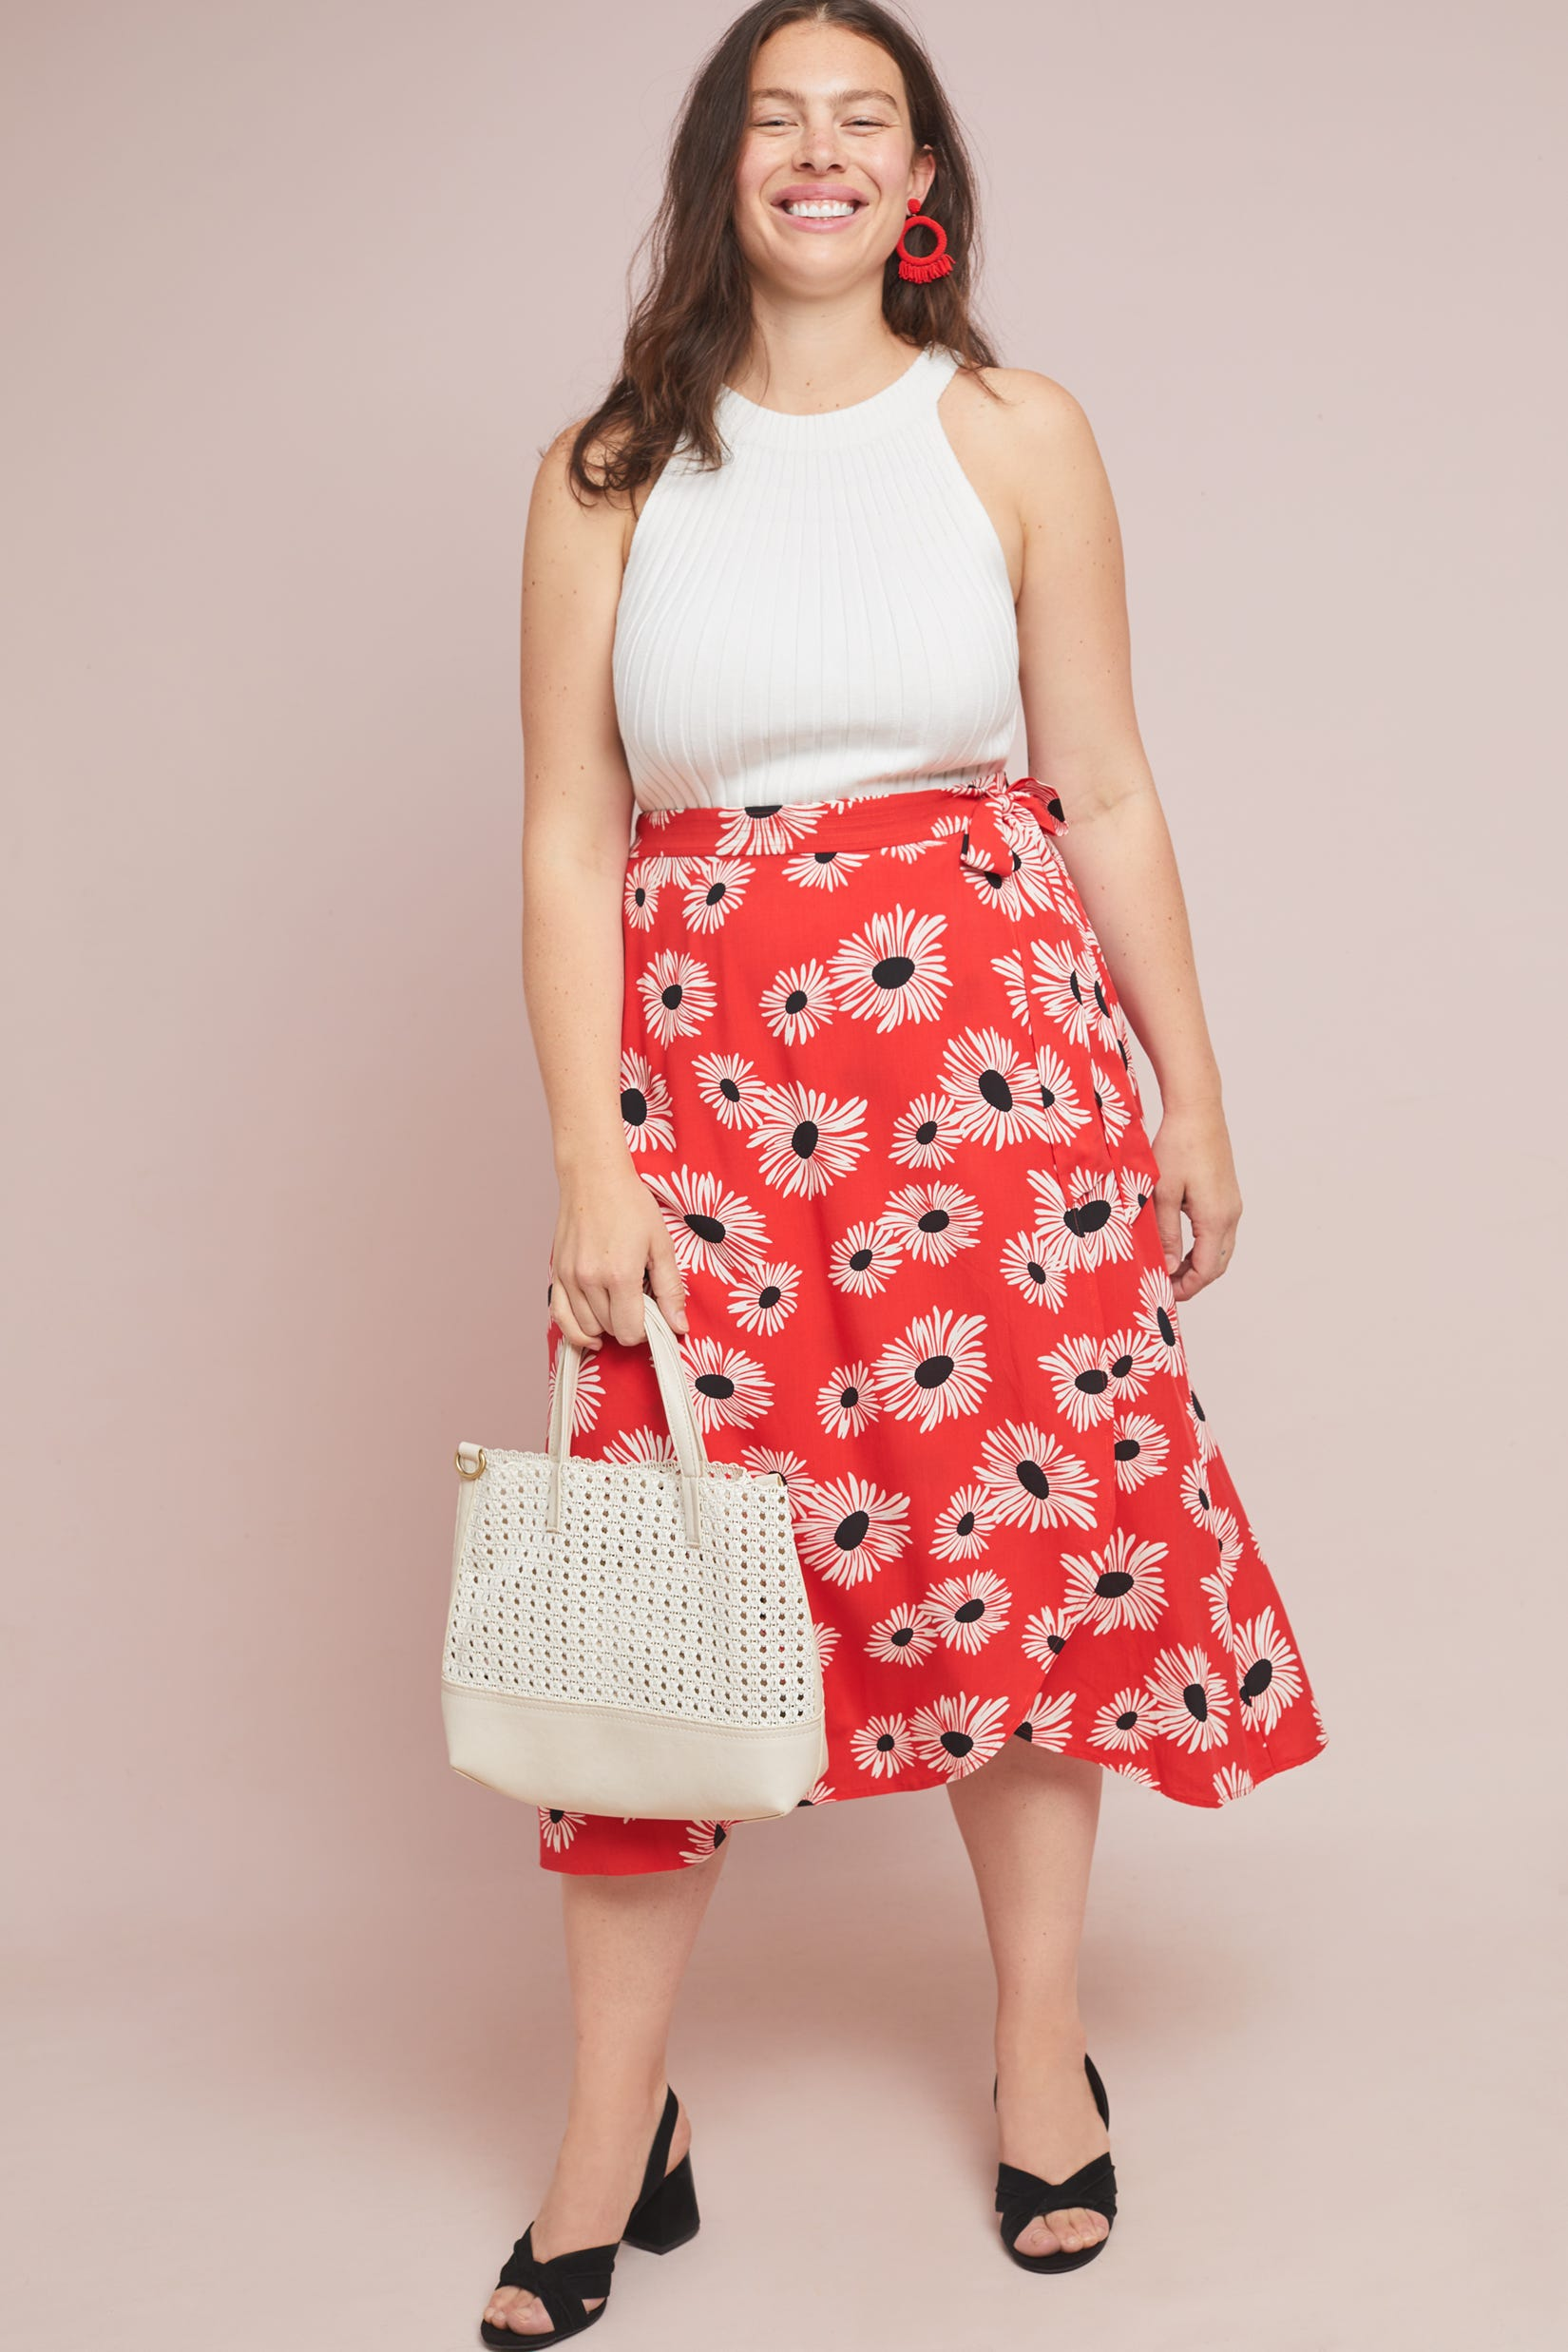 049d9f031ab8 Anthropologie Launches Plus Size Collection, APlus